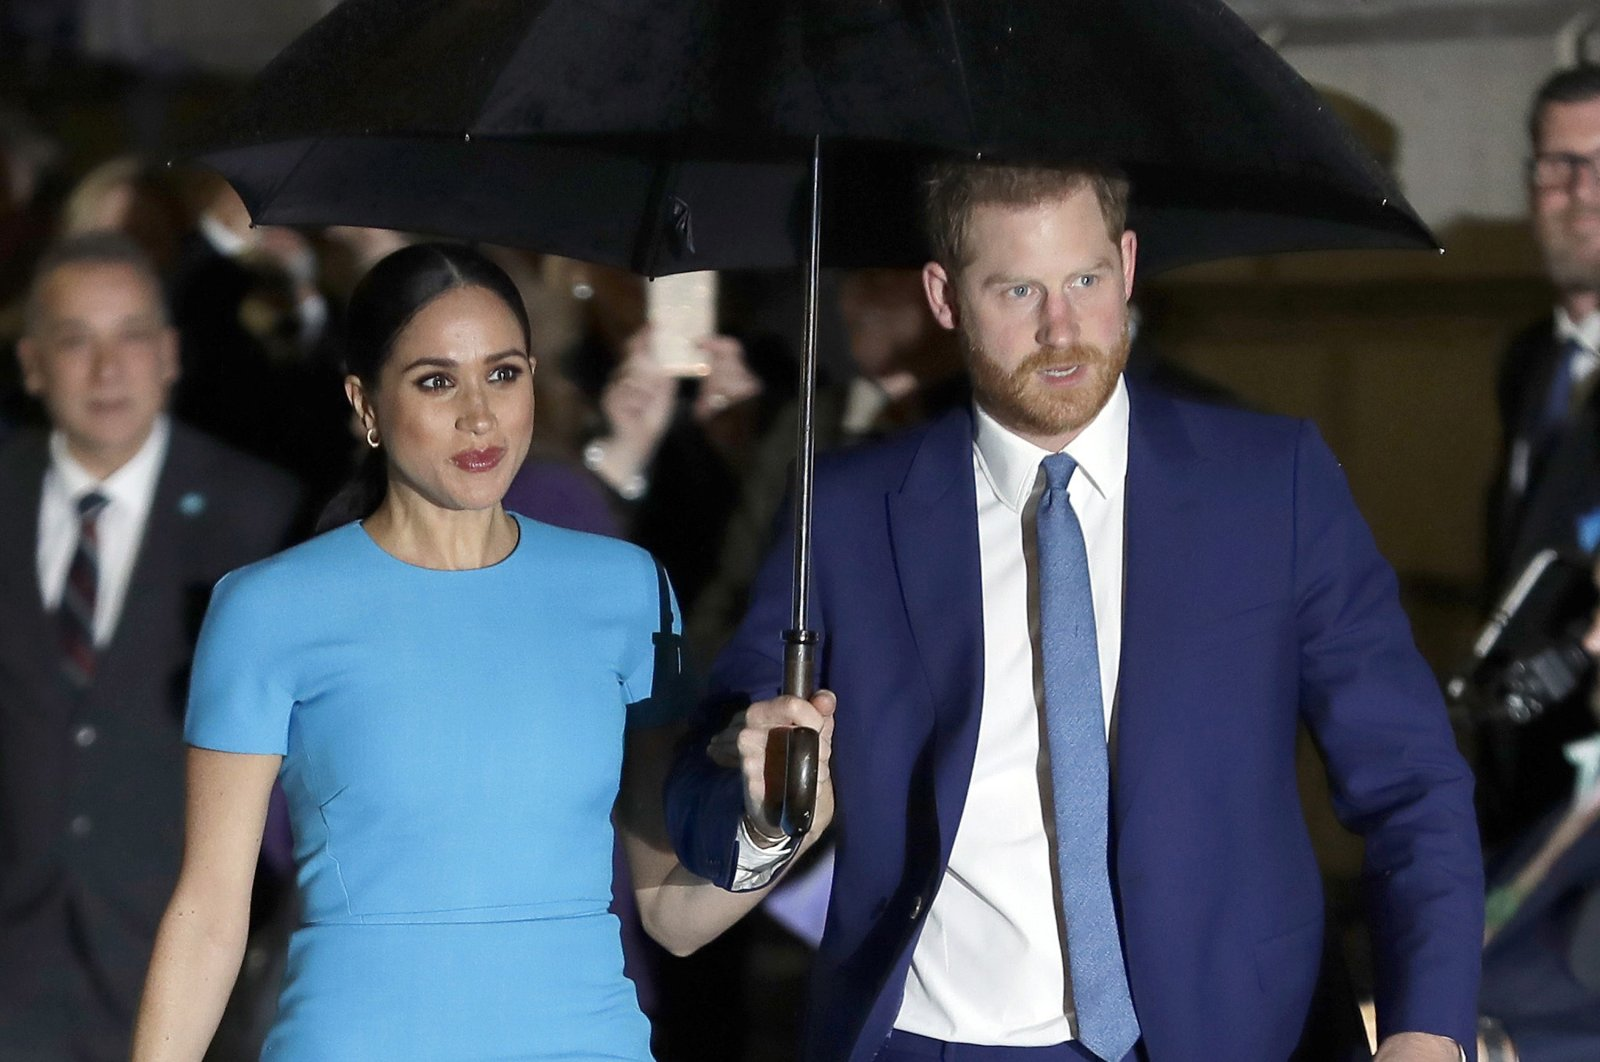 Britain's Prince Harry and Meghan, Duchess of Sussex, arrive at the annual Endeavour Fund Awards in London, U.K., March 5, 2020. (AP Photo)